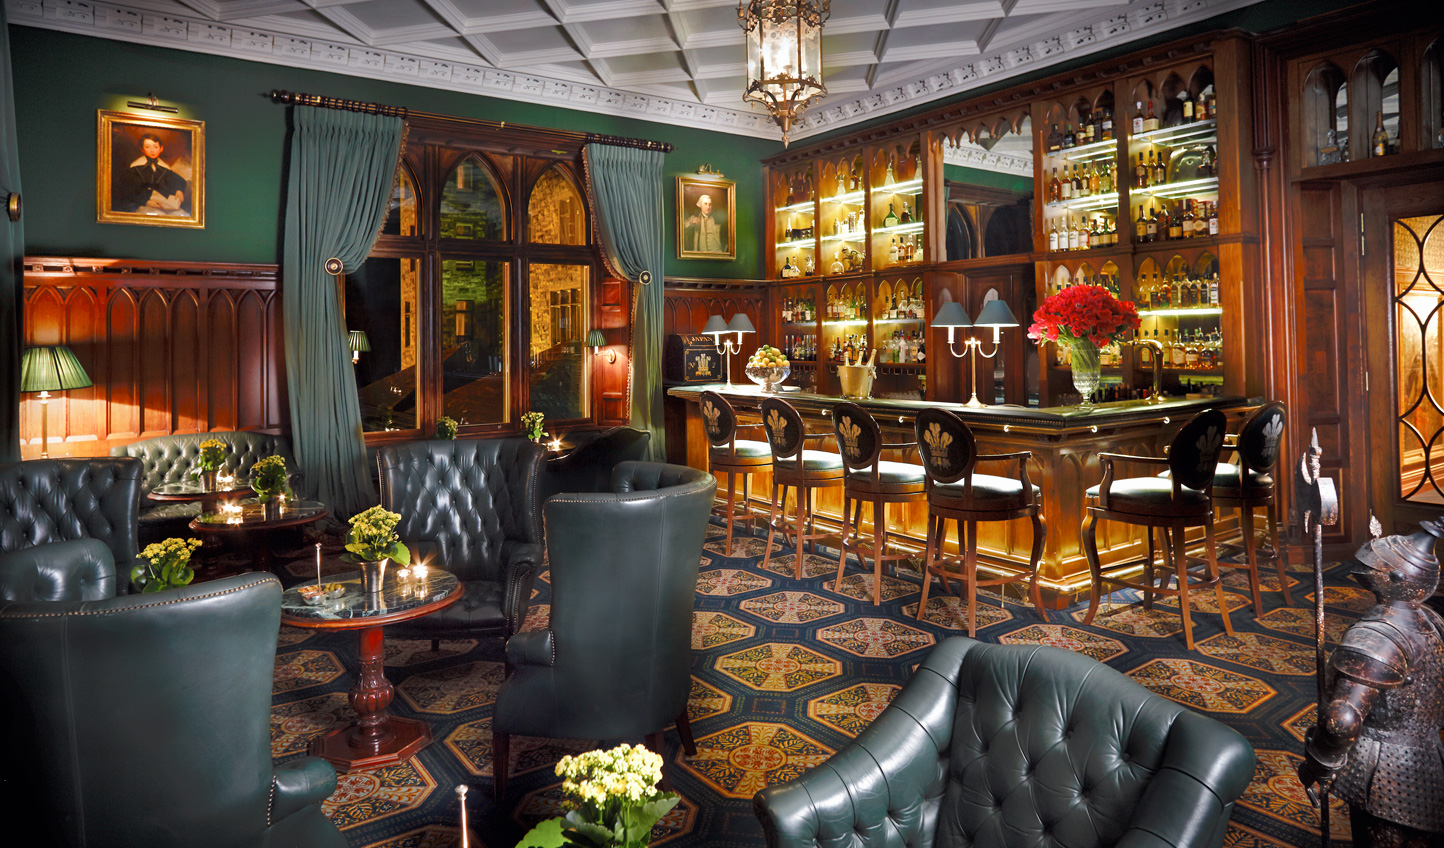 Pull up a chair over a whiskey in the Prince of Wales Bar